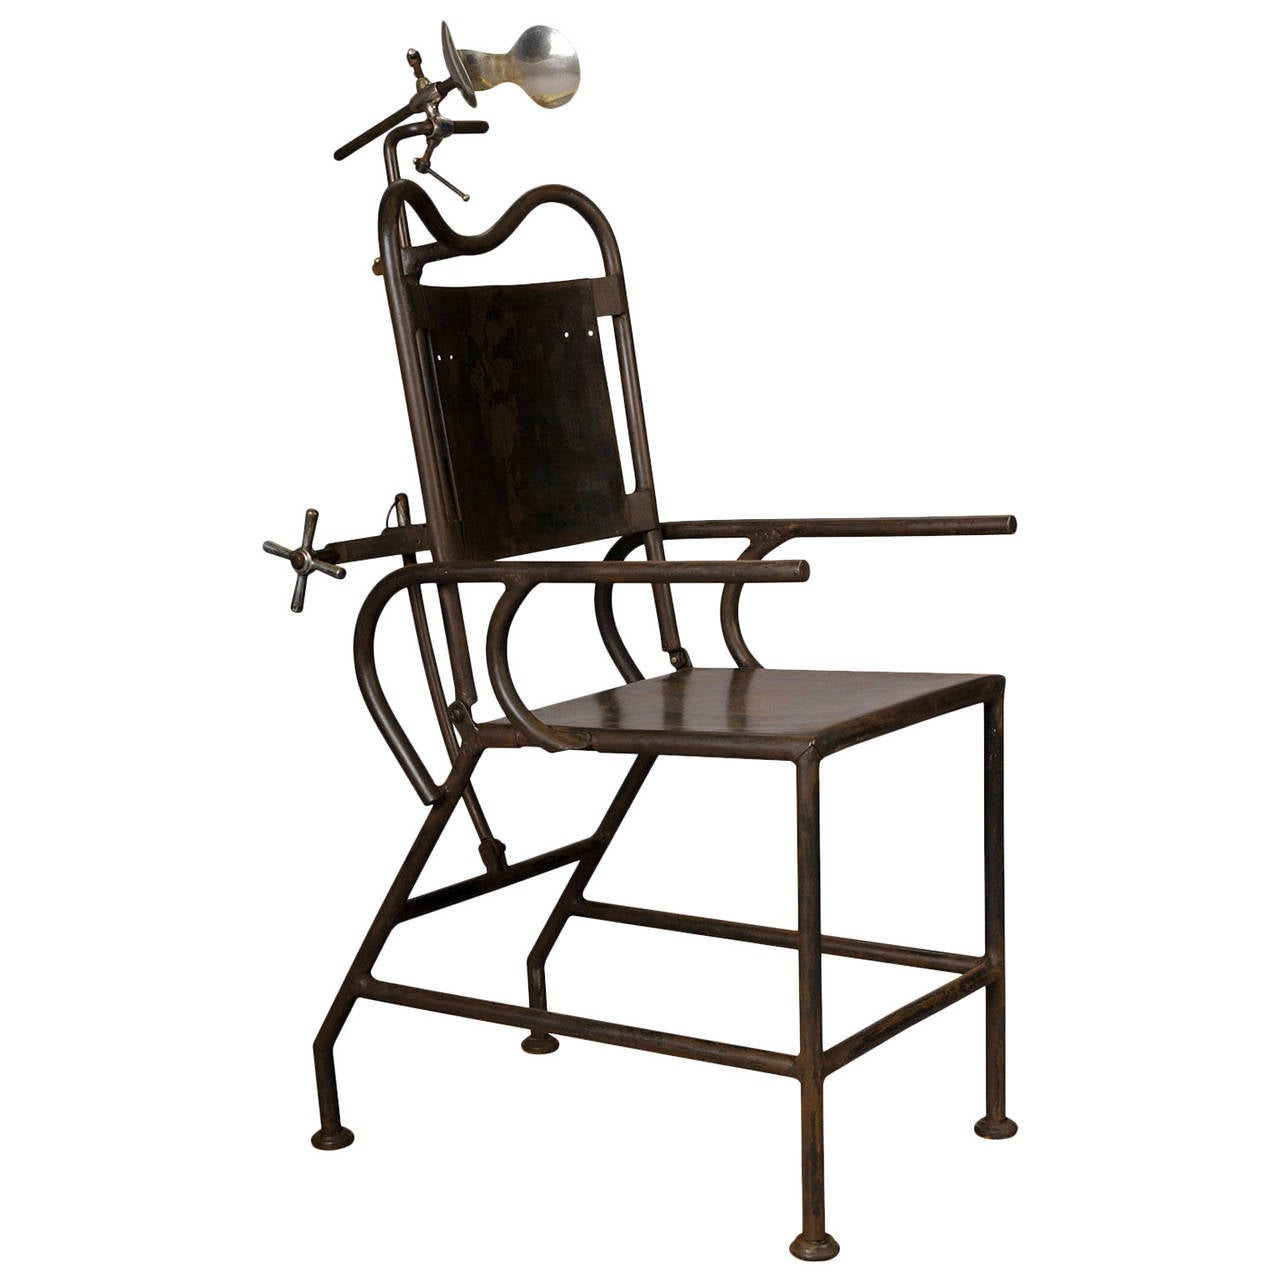 Captivating Medical Armchair In Sheet Metal And Nickel Parts, Circa 1930 For Sale